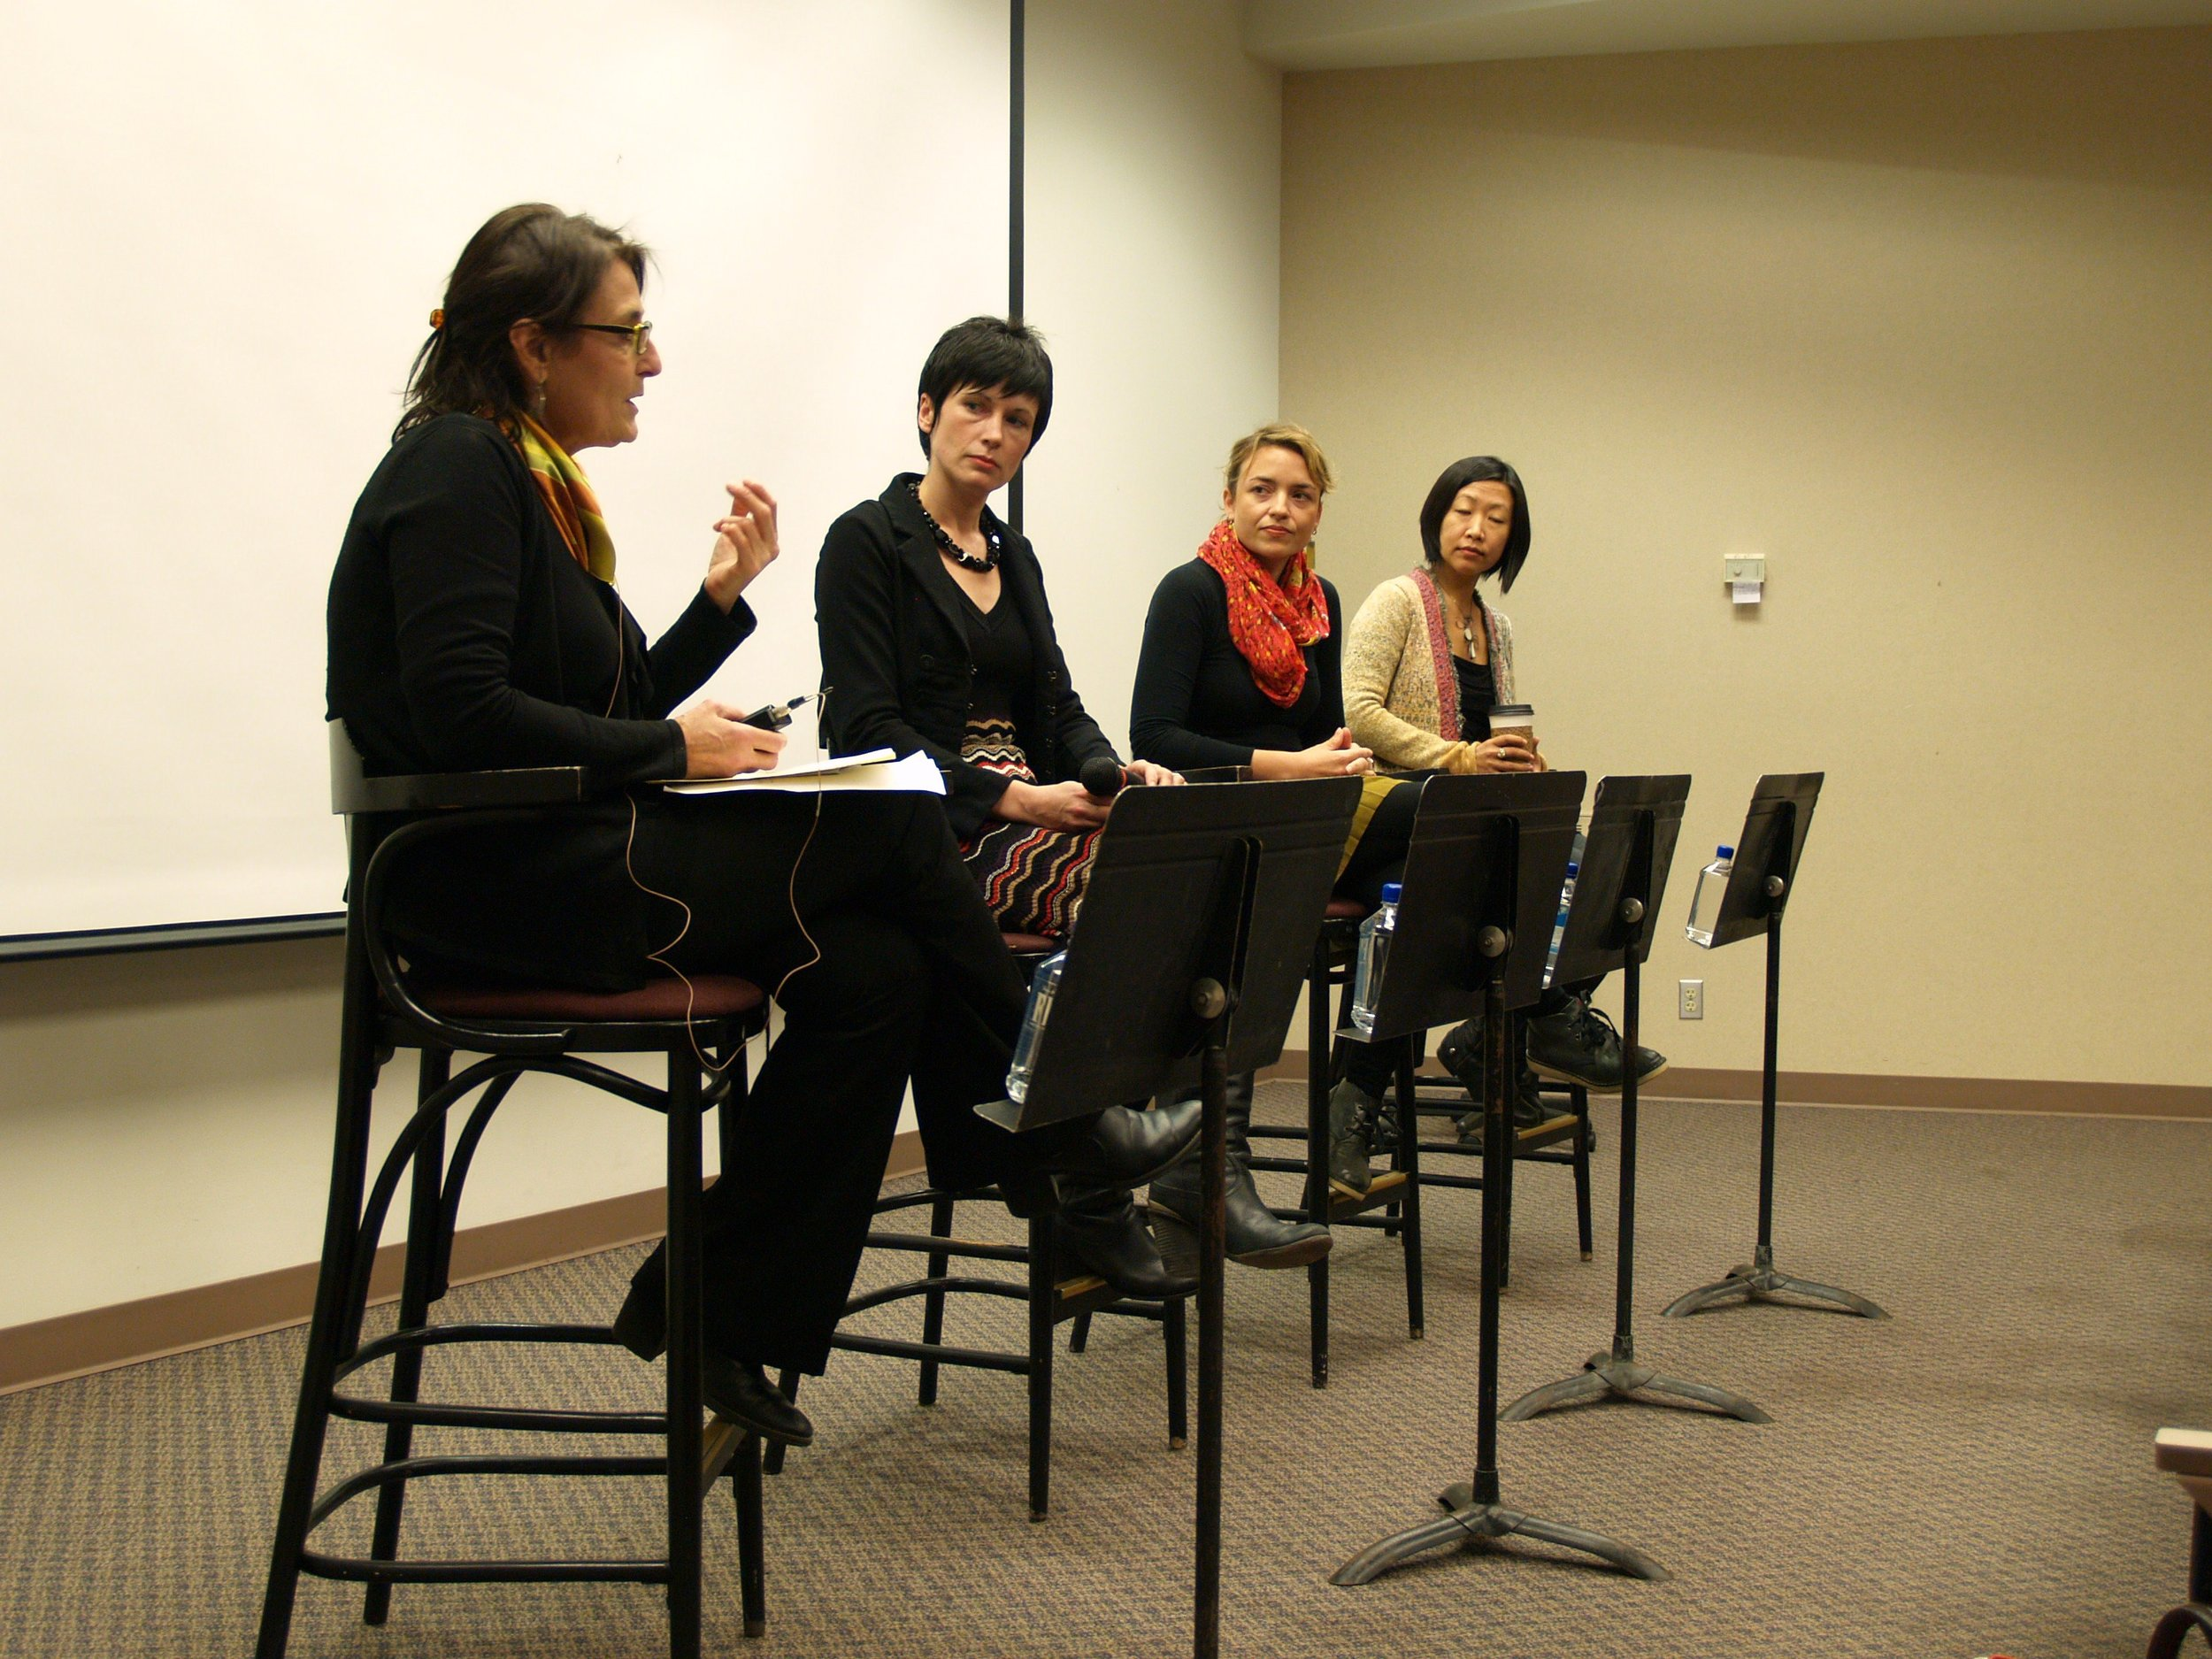 Panel on installation art. Isabel Barbuzza (moderator), Liz Miller, Rachel Hayes and Beili Liu (panelists)